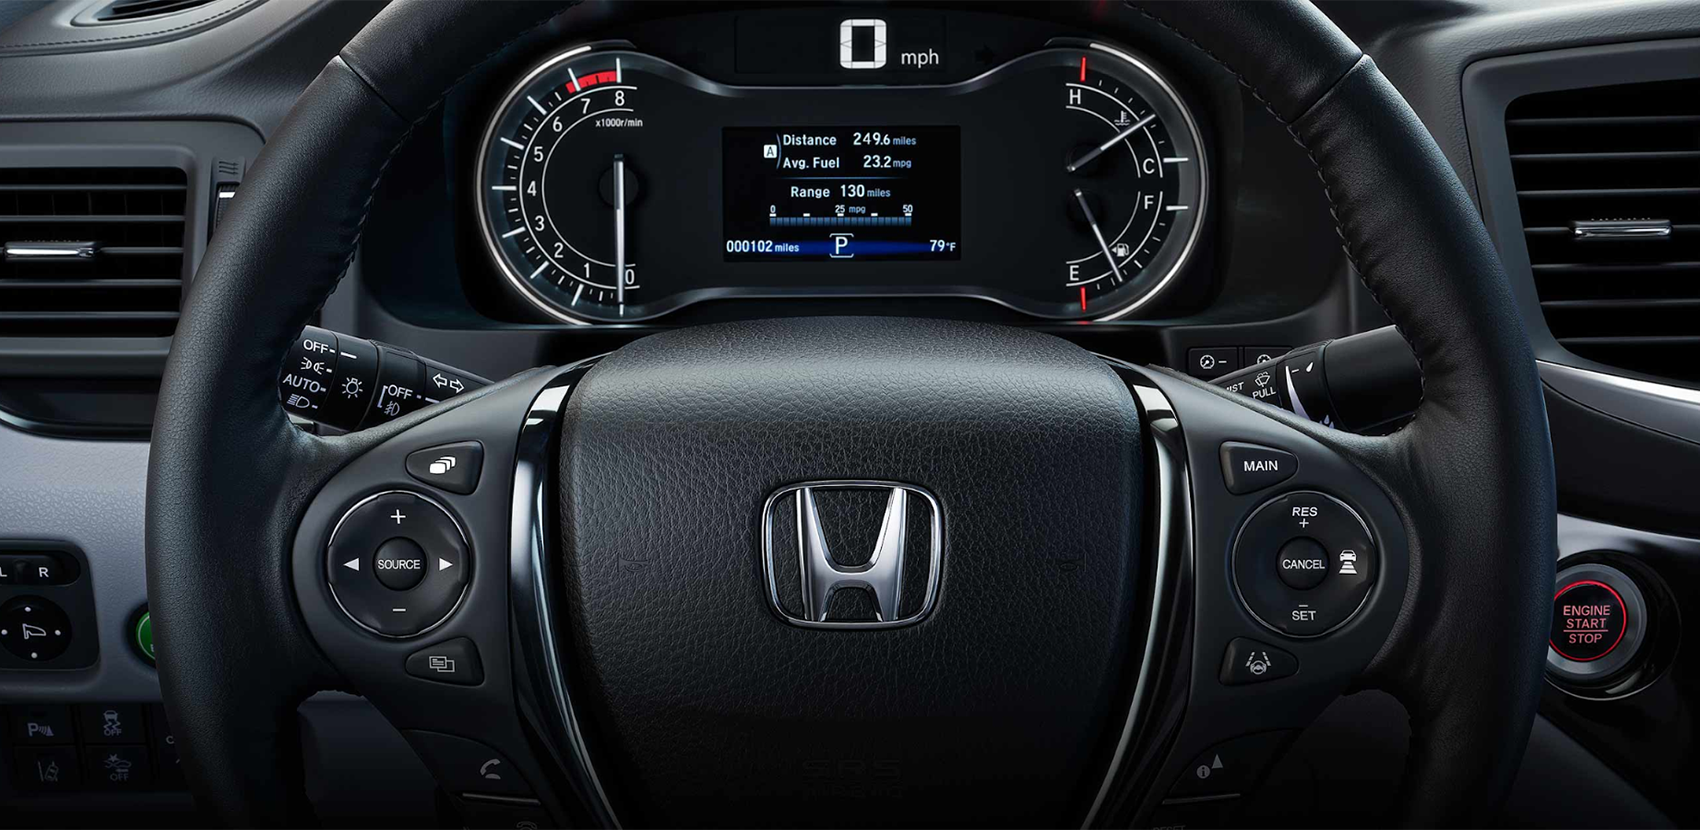 Honda Maintenance Minder Codes | Honda East